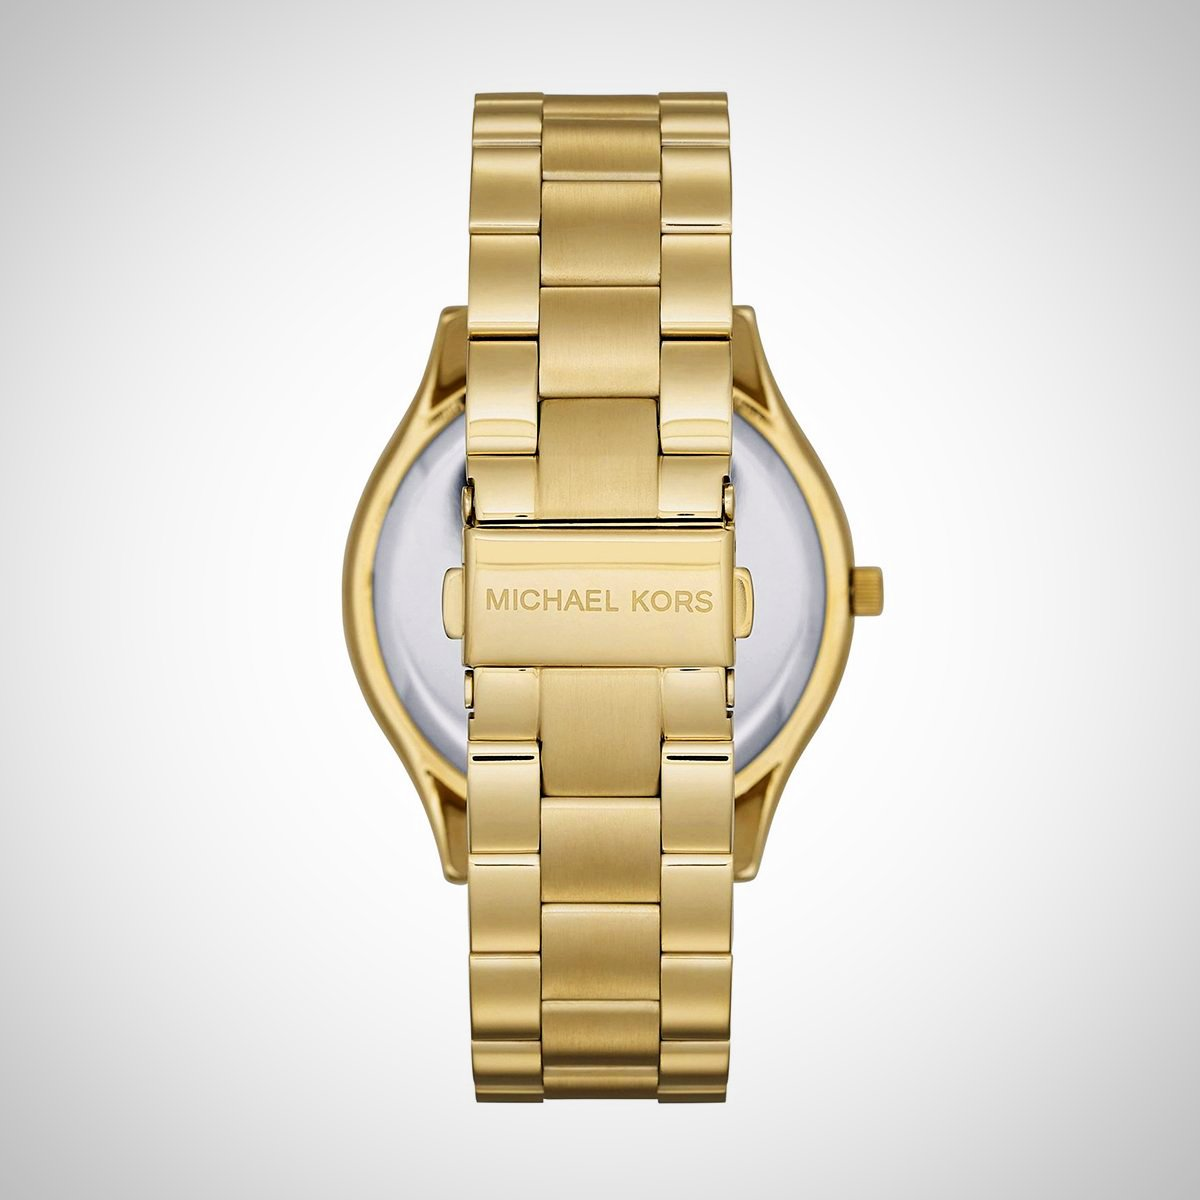 Michael Kors MK3590 Slim Runway Ladies Gold Tone Crystal Watch